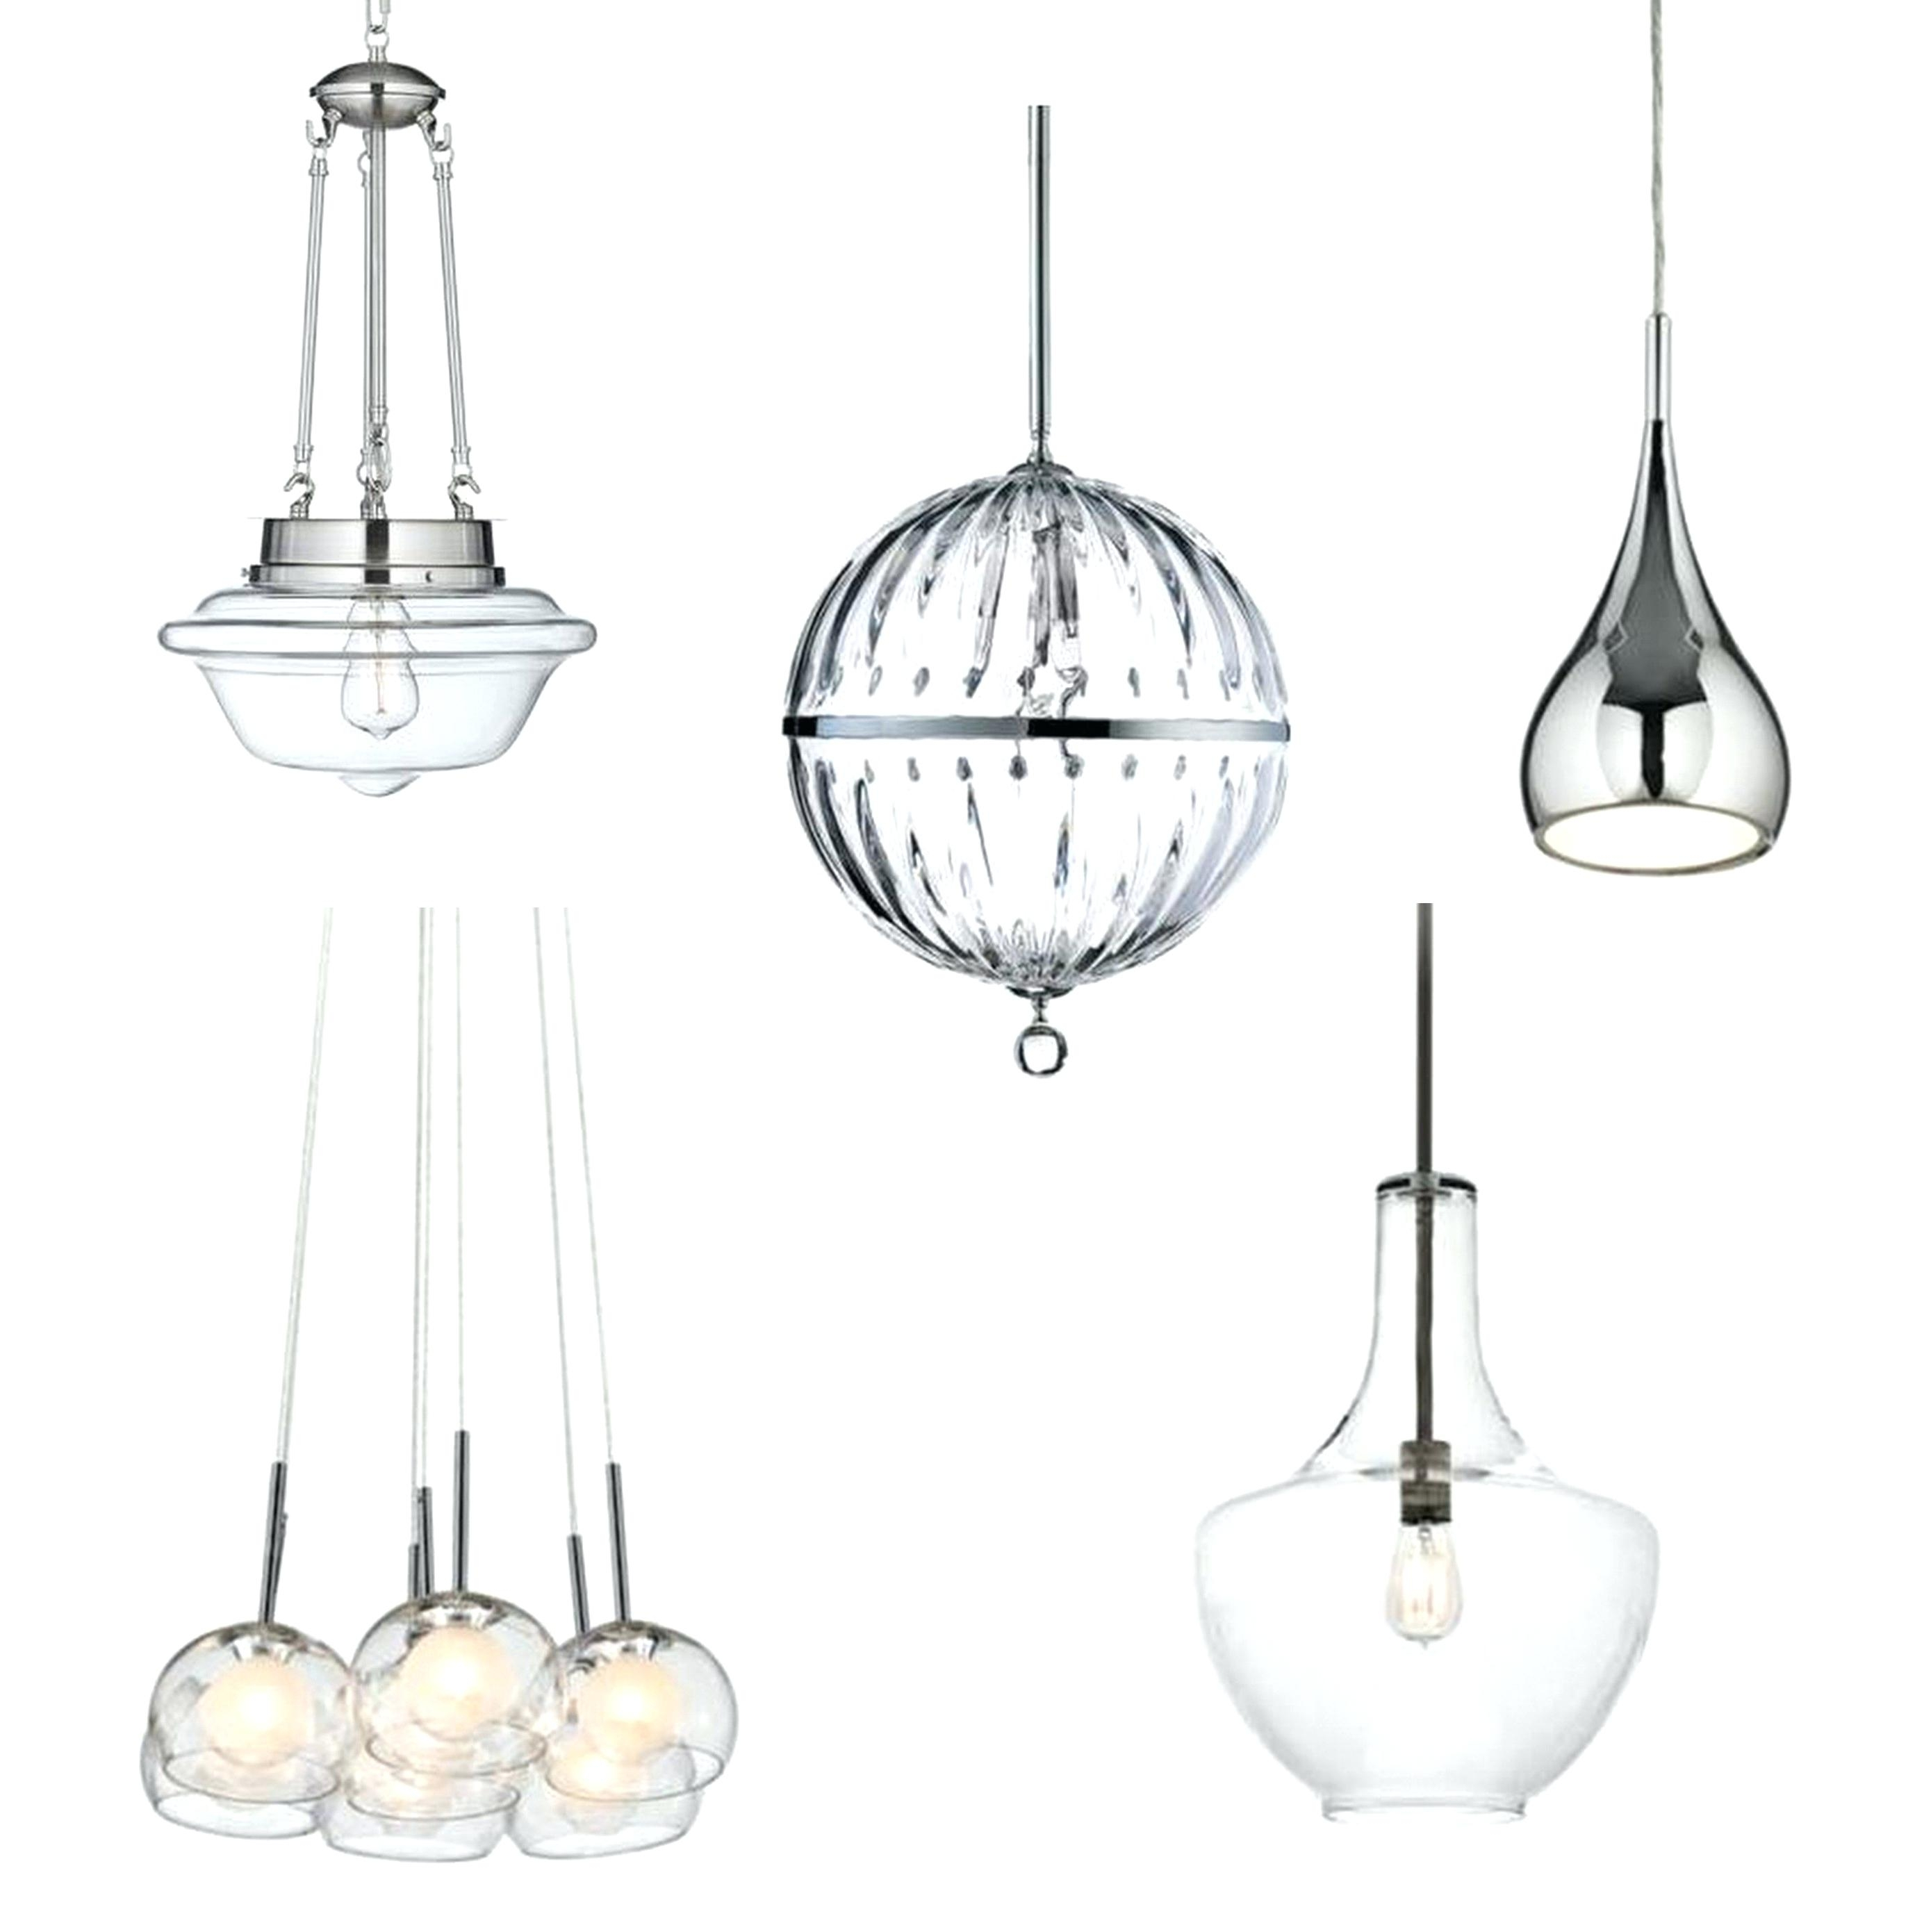 Inspiration about Pendant Light : Lamps Plus Pendant Light Table At Target Floor Regarding Lamps Plus Outdoor Hanging Lights (#12 of 15)